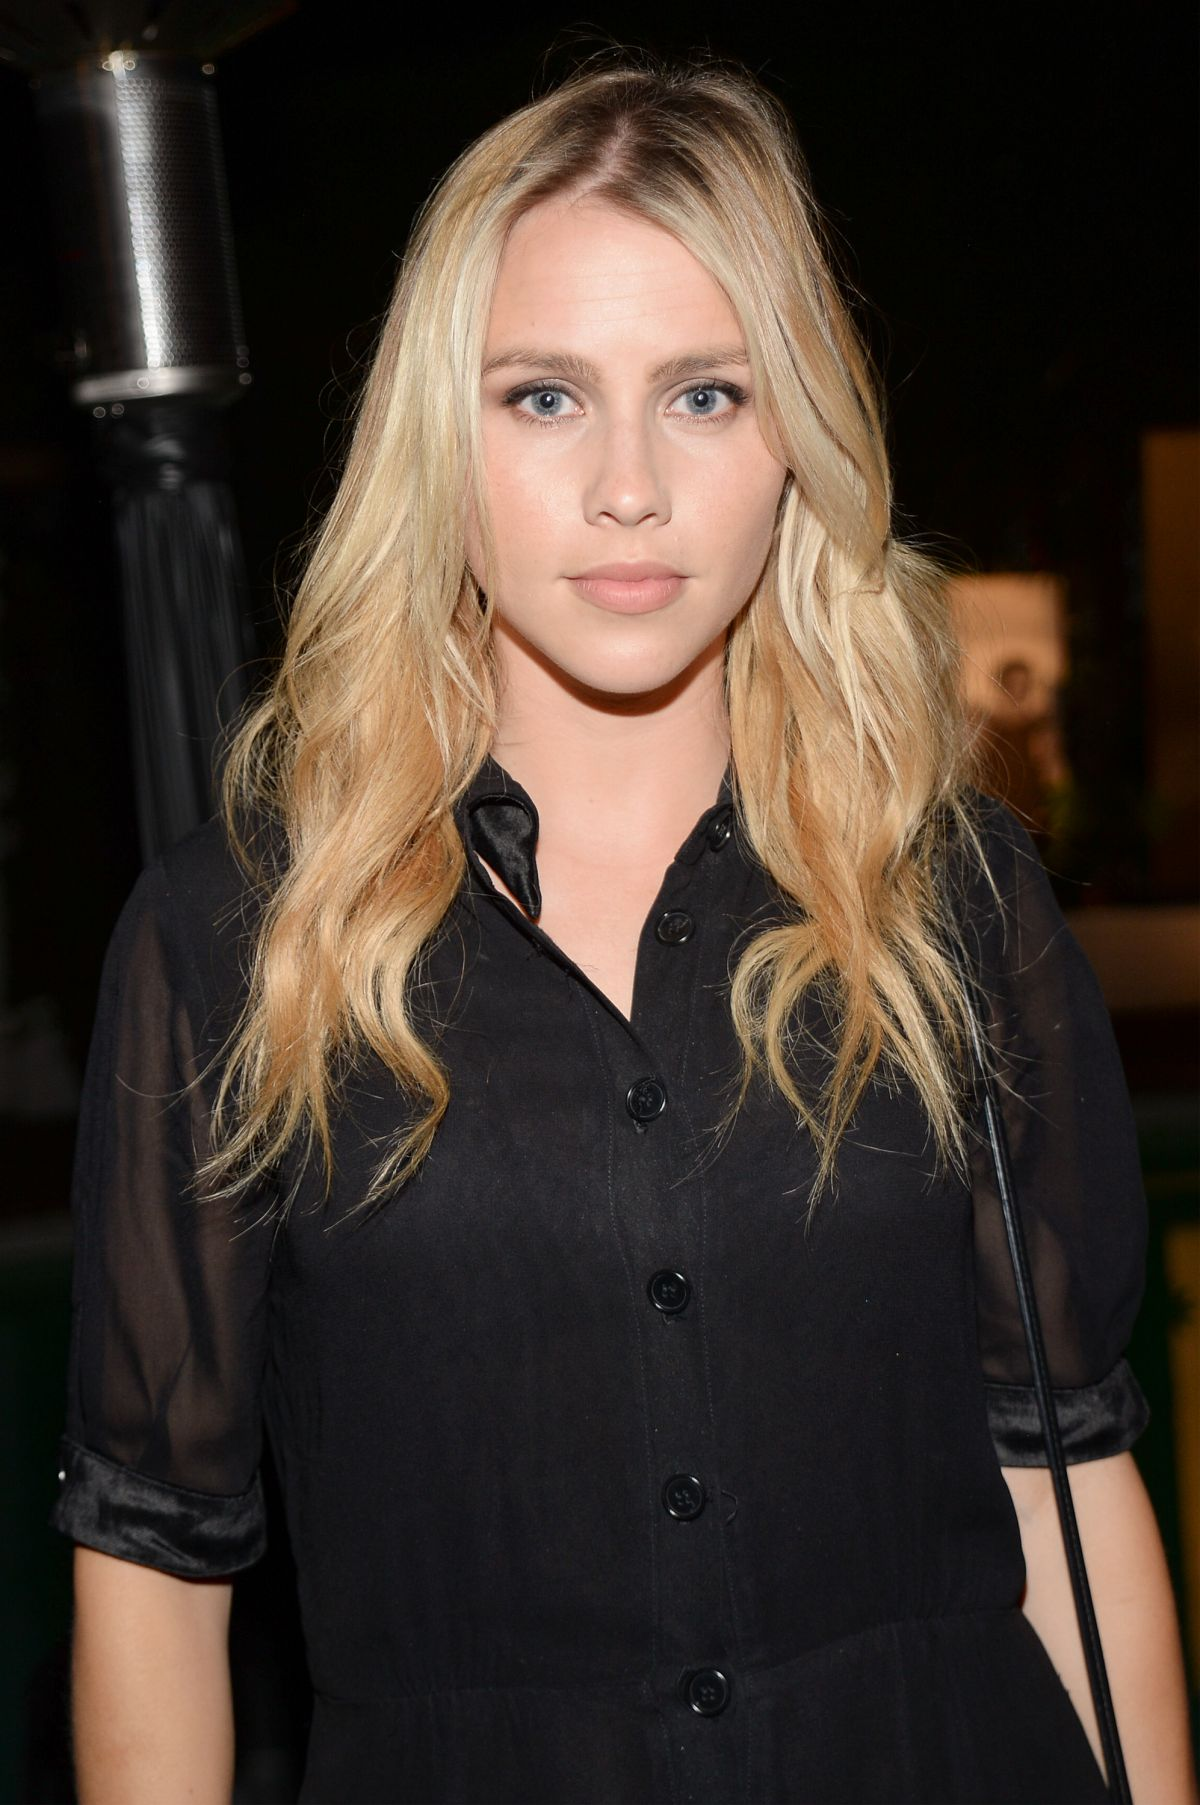 CLAIRE HOLT at Oliver Peoples 30th Anniversary Party in Los Angeles 05/12/2017